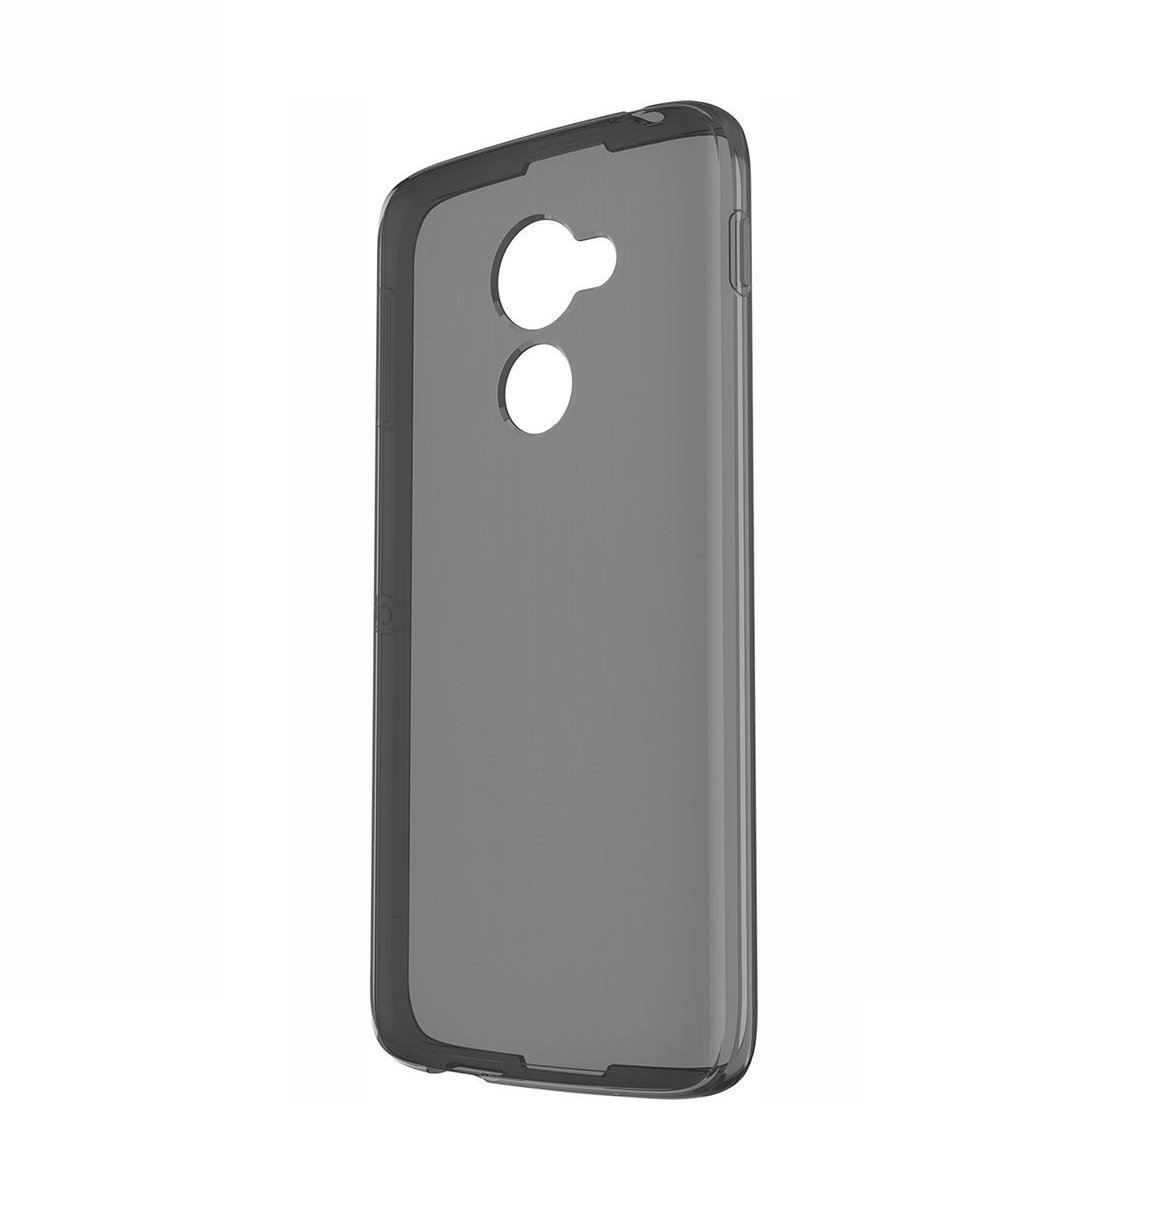 BlackBerry ACC63105001 Soft Shell DTEK60 Translucent Case - Black